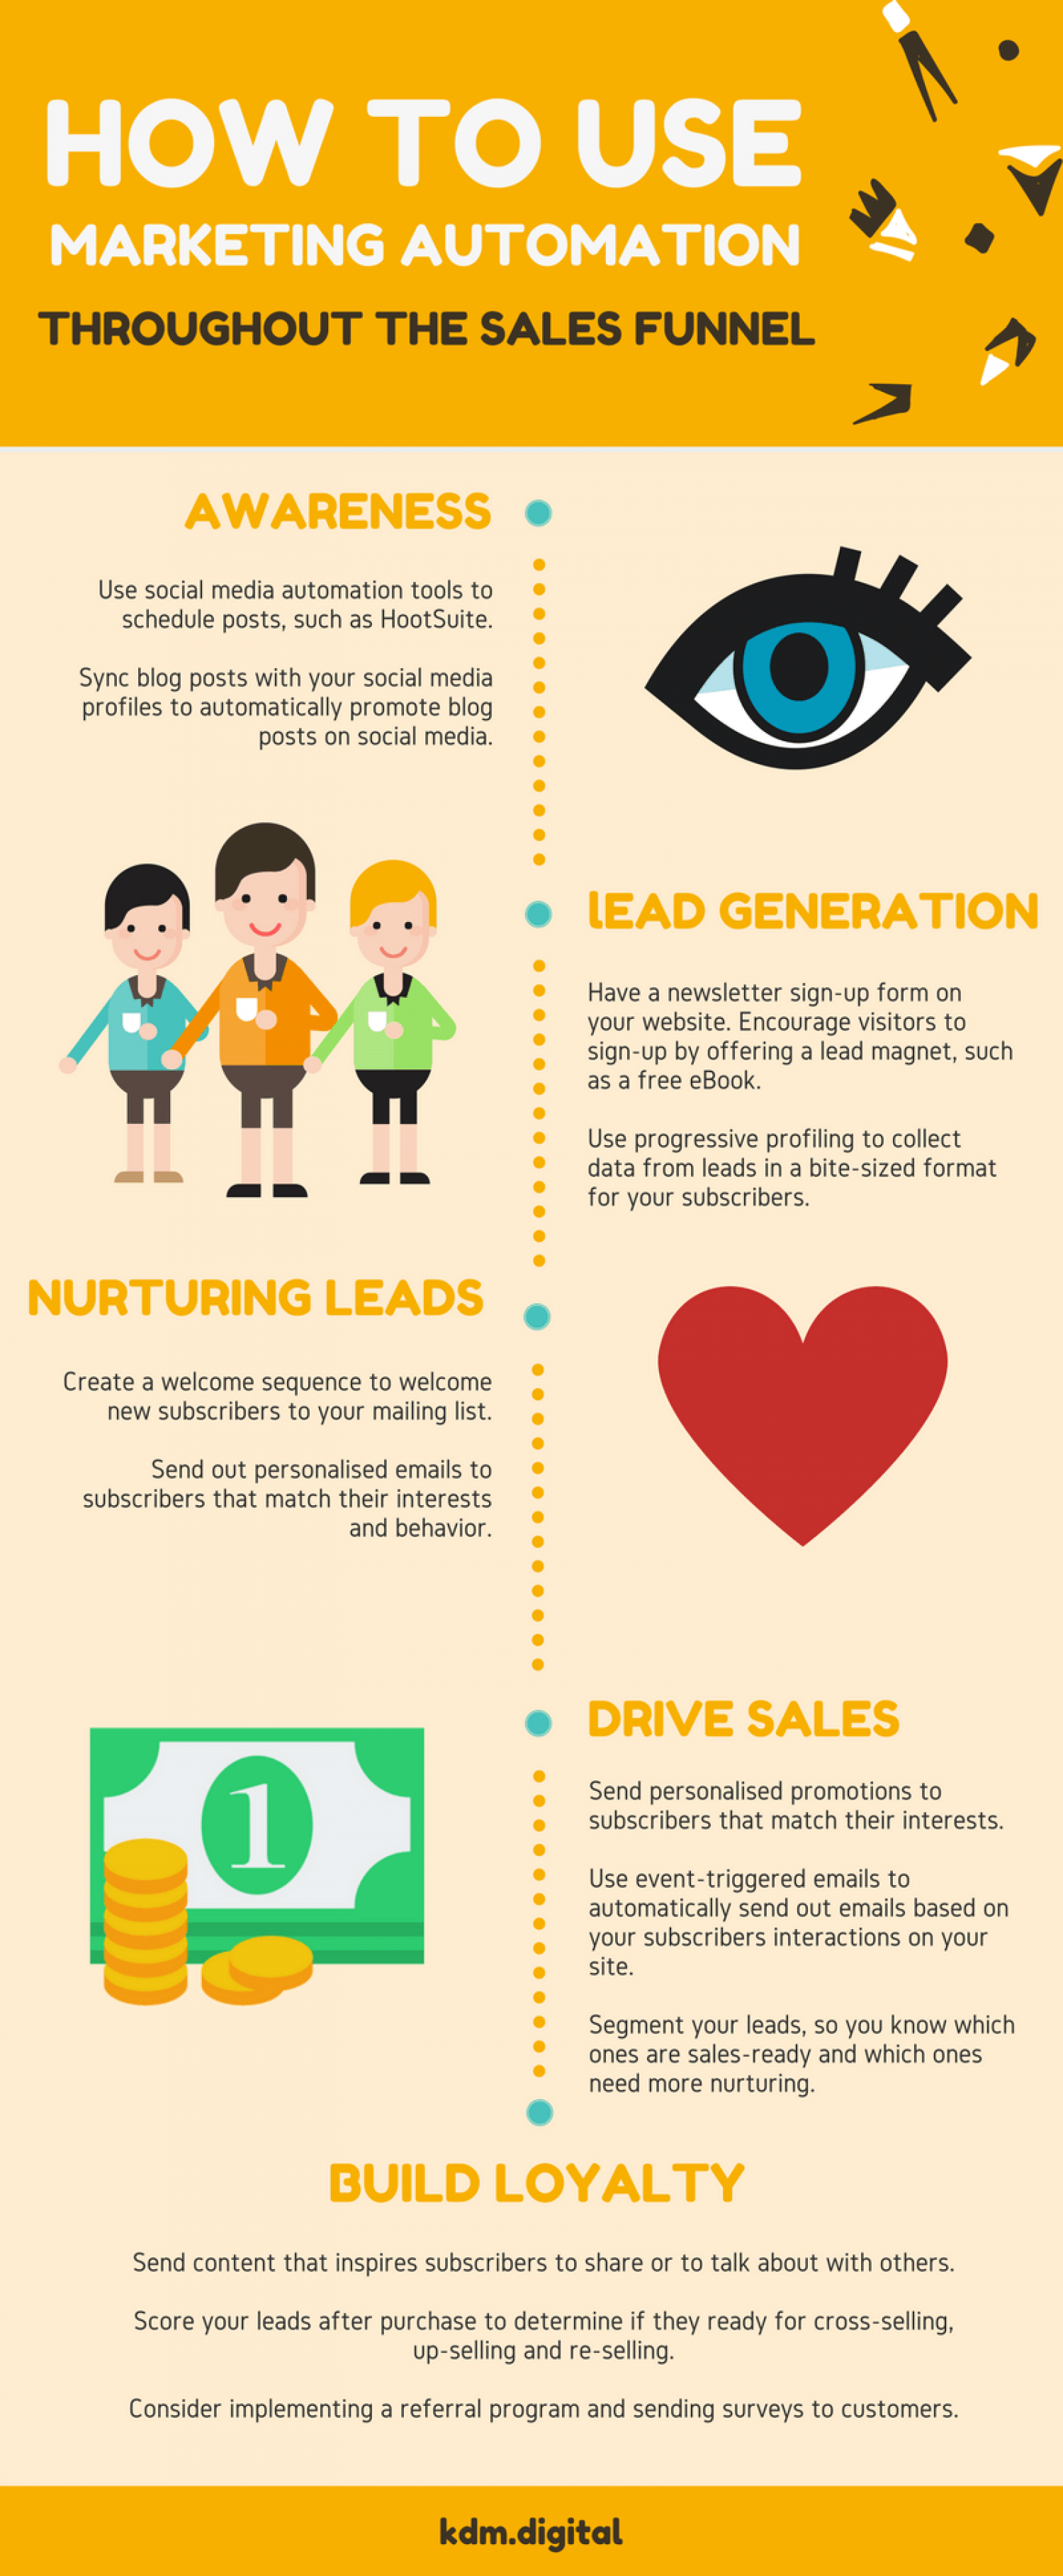 How to Use Marketing Automation Throughout the Sales Funnel? Infographic